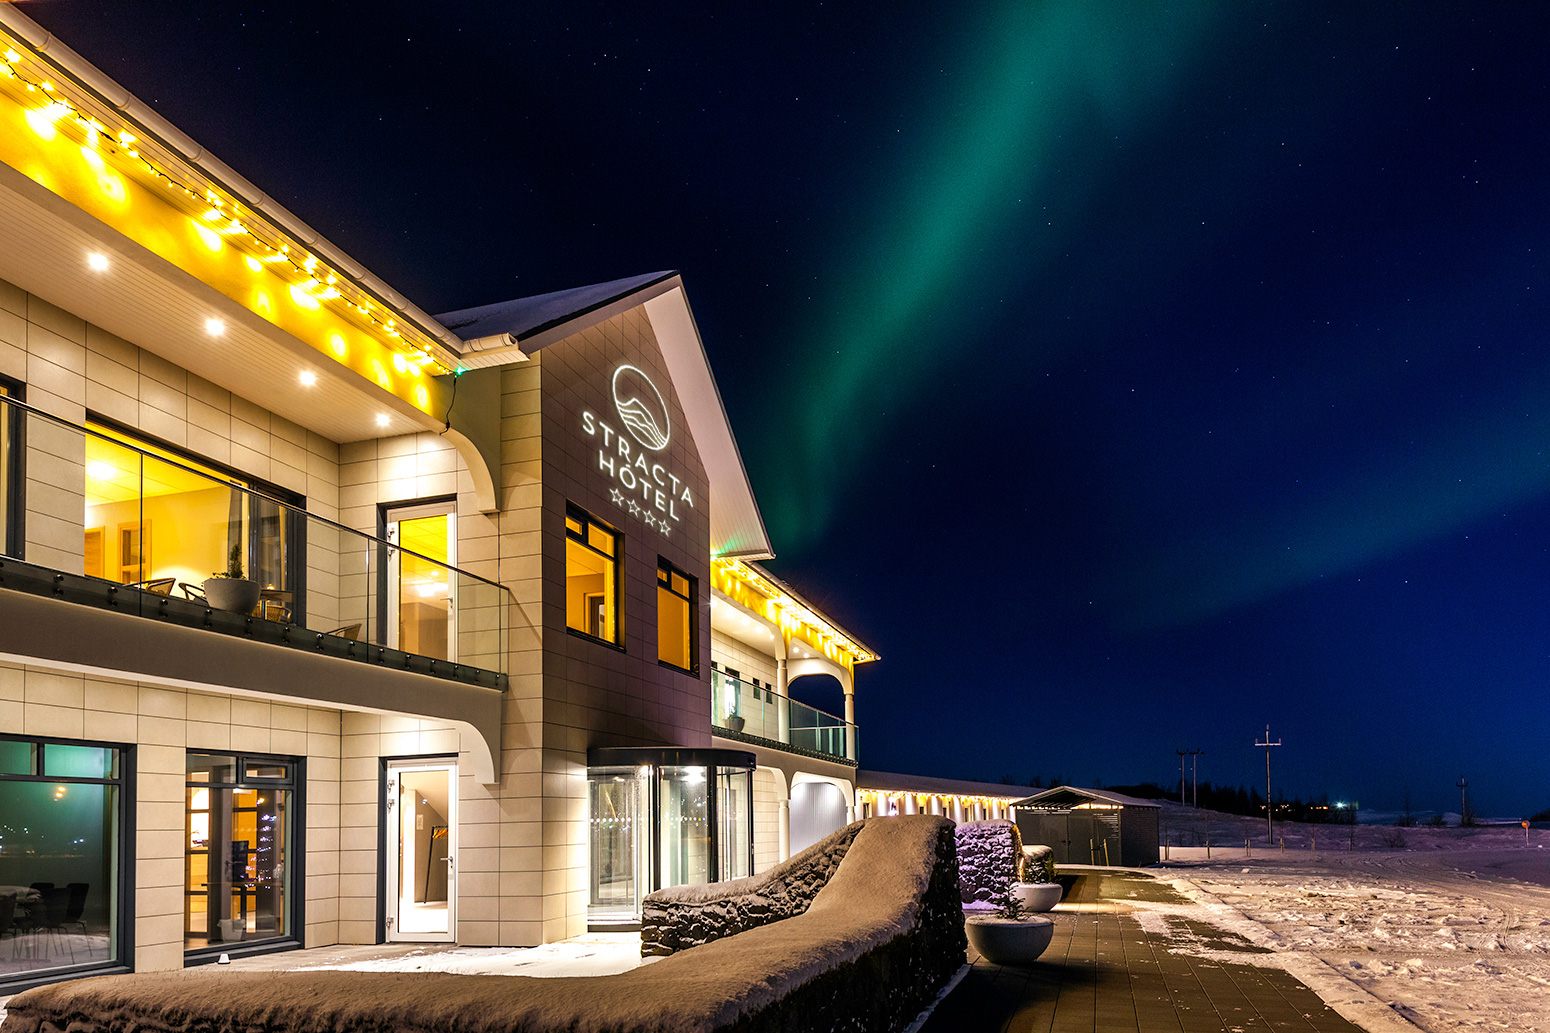 About Stracta Hotel Iceland